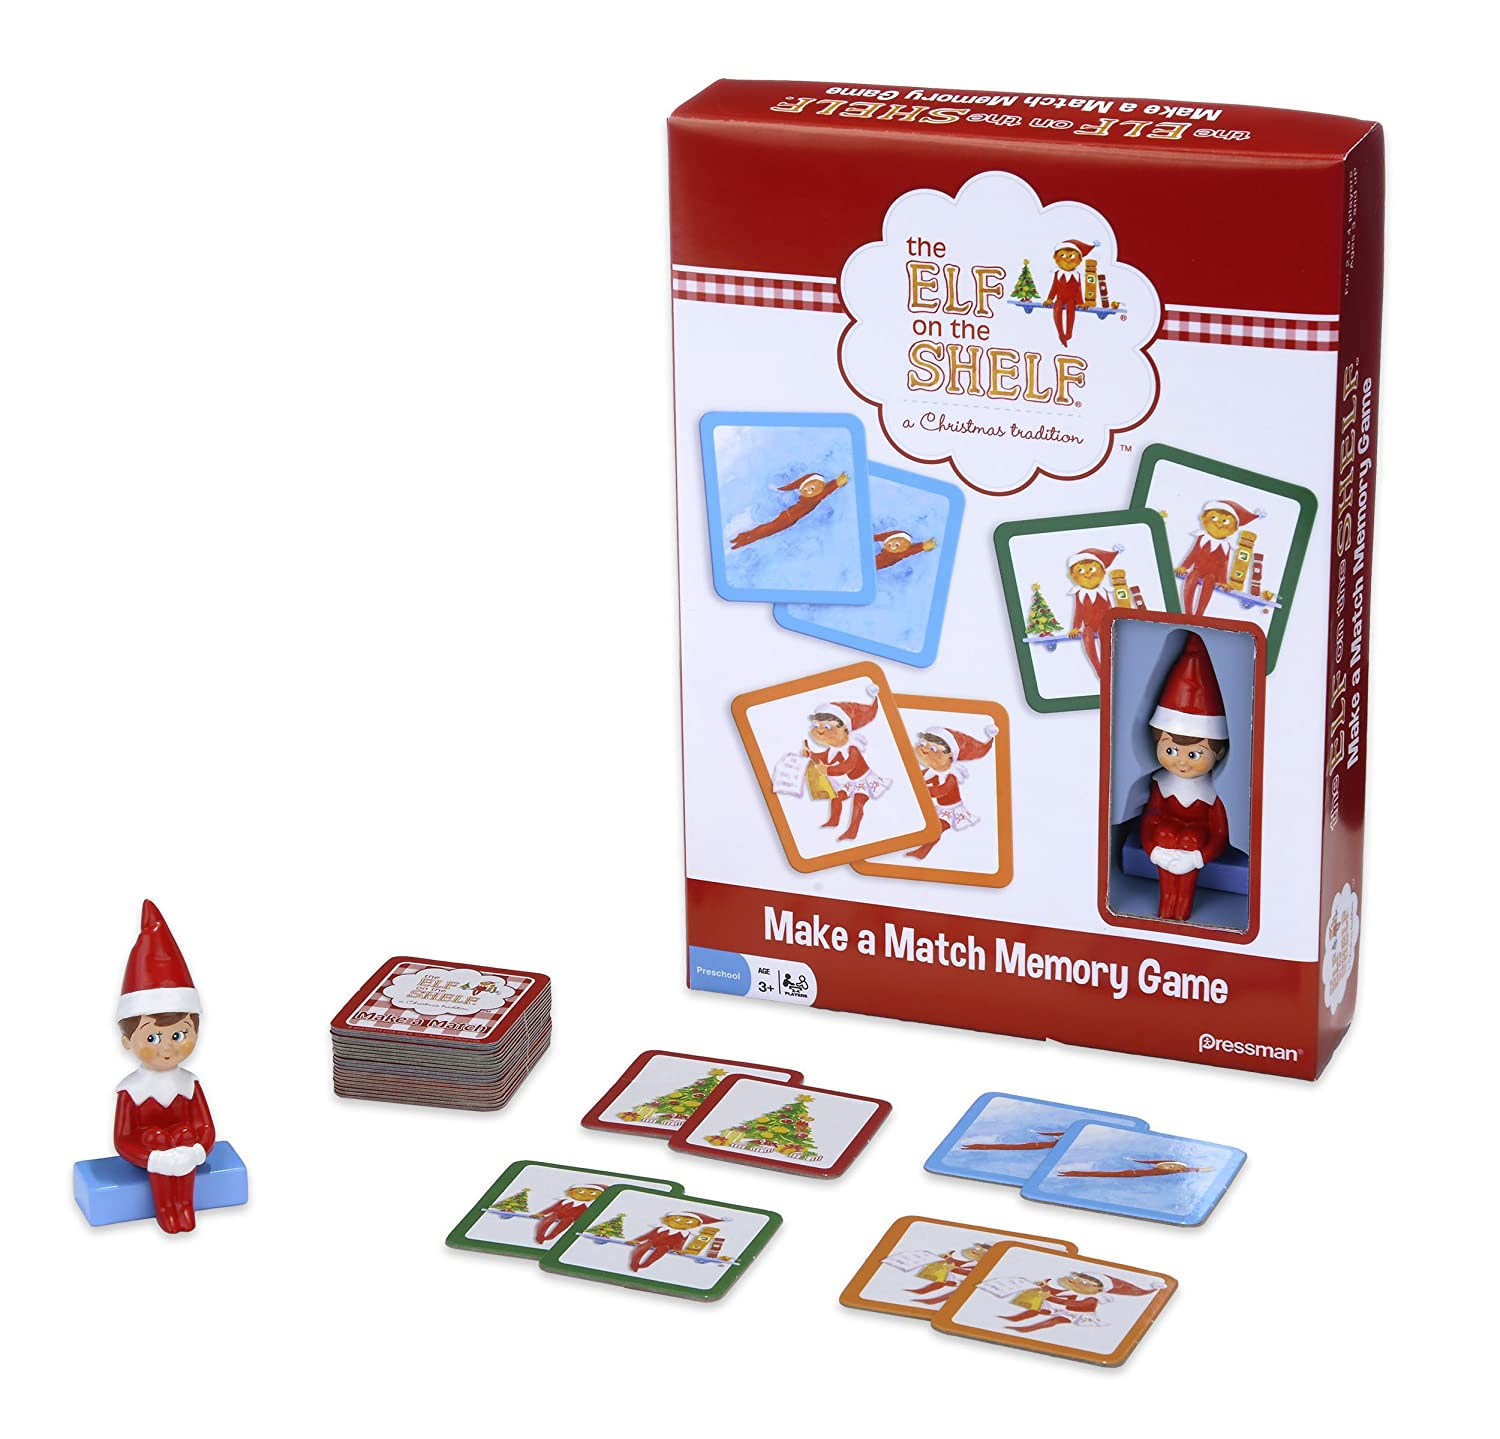 amazon com elf on the shelf make a match game based on the